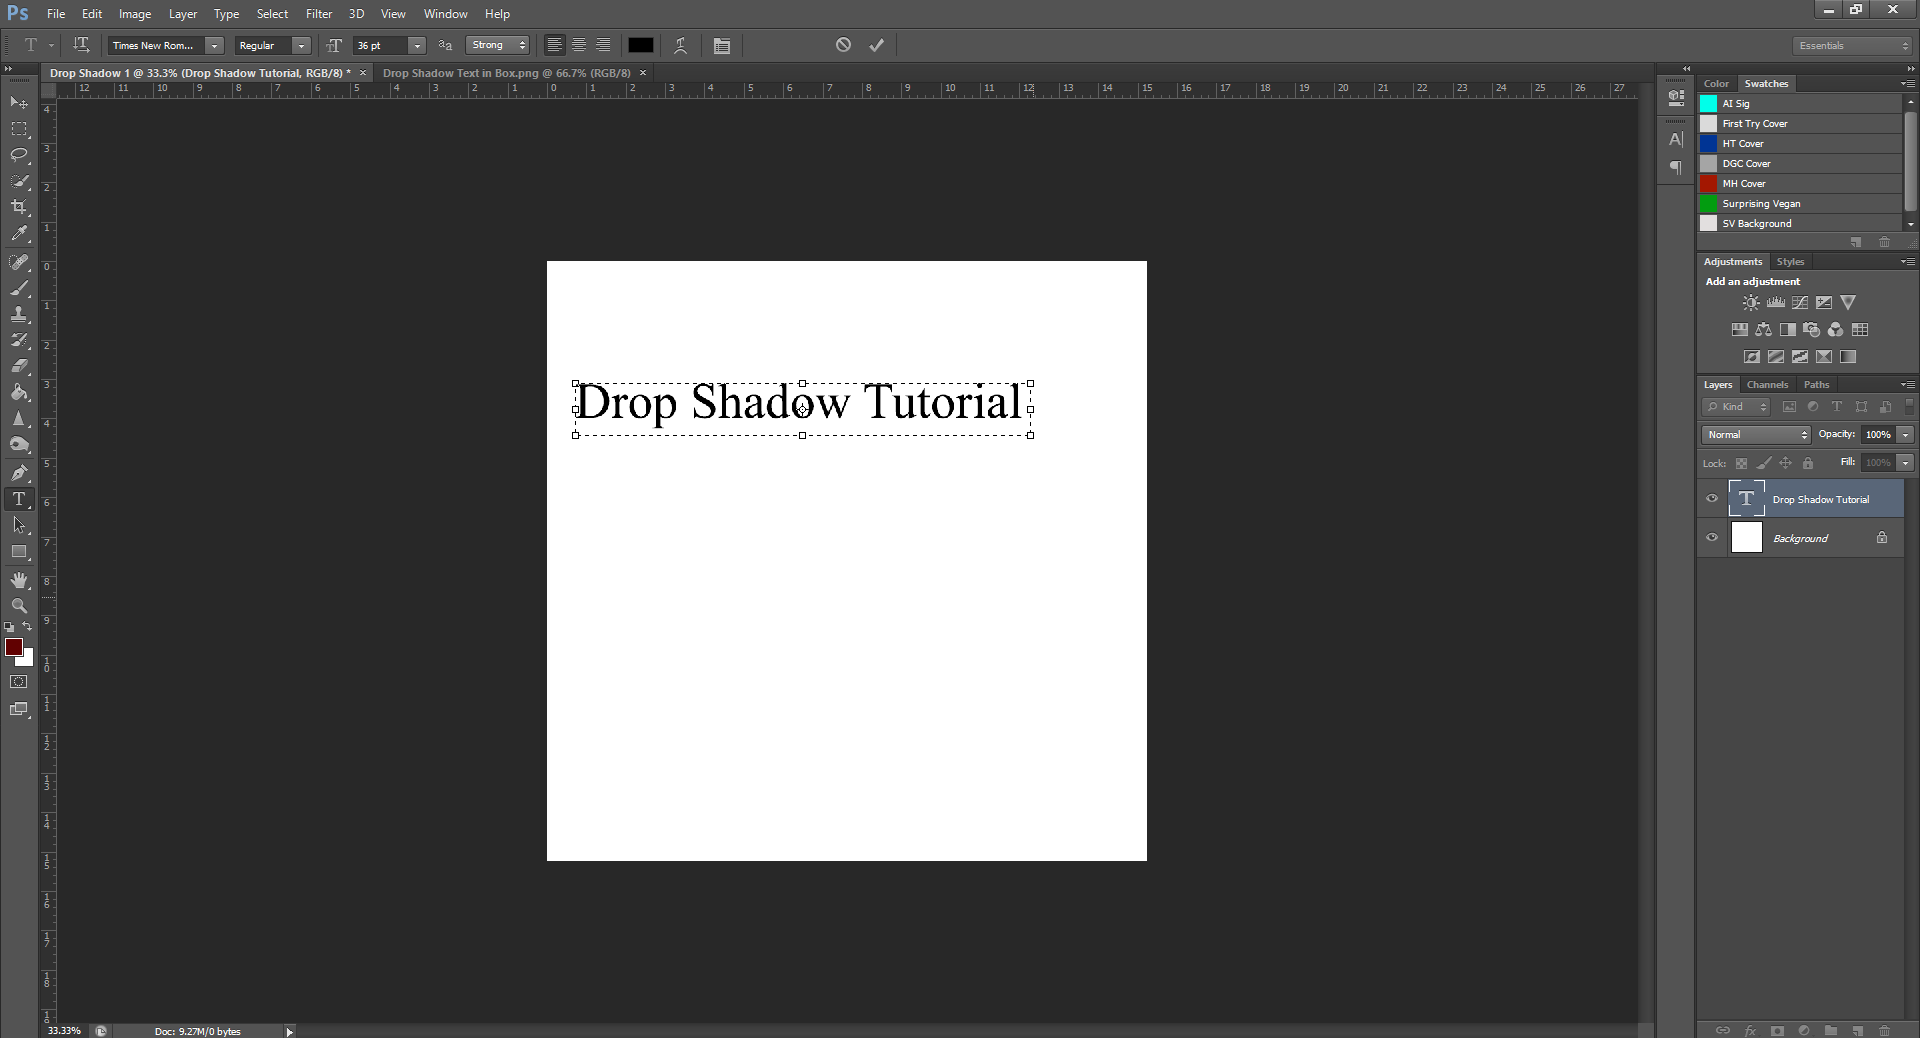 AterImber.com - Writing - Writing Tips - PHSH Tutorial - Drop Shadow - Text Box Resized